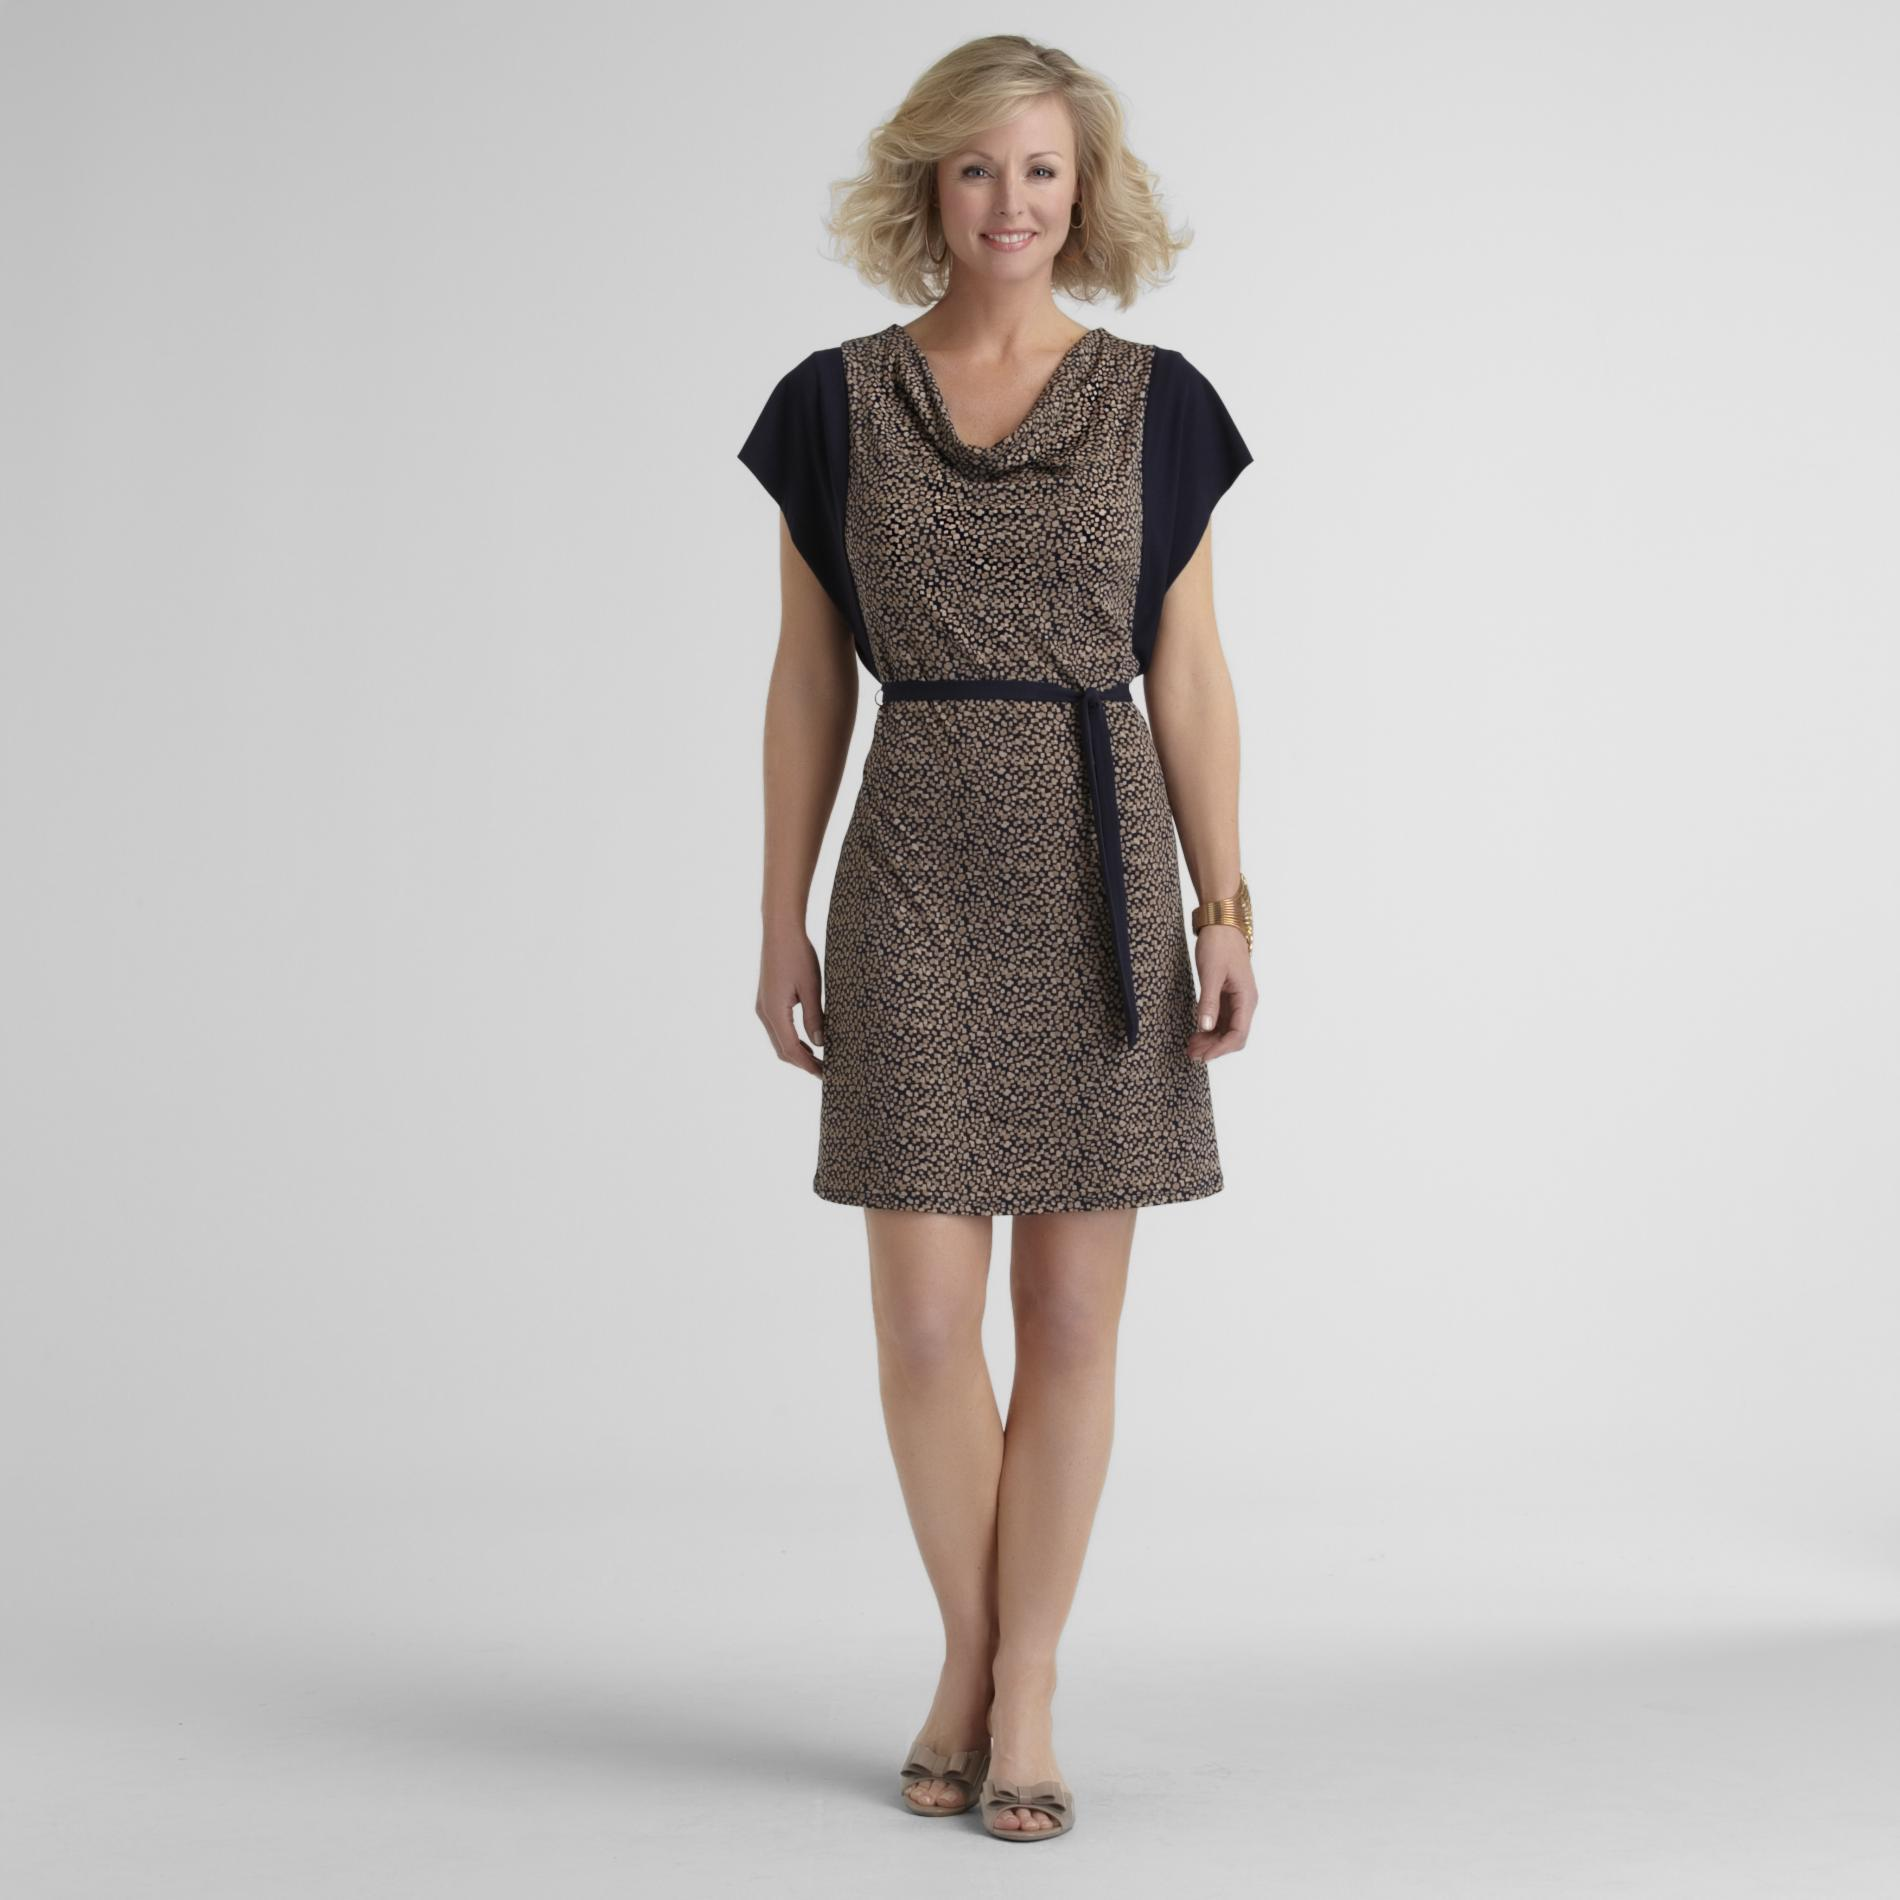 Jaclyn Smith Women's Knit Dress - Confetti Print at Kmart.com